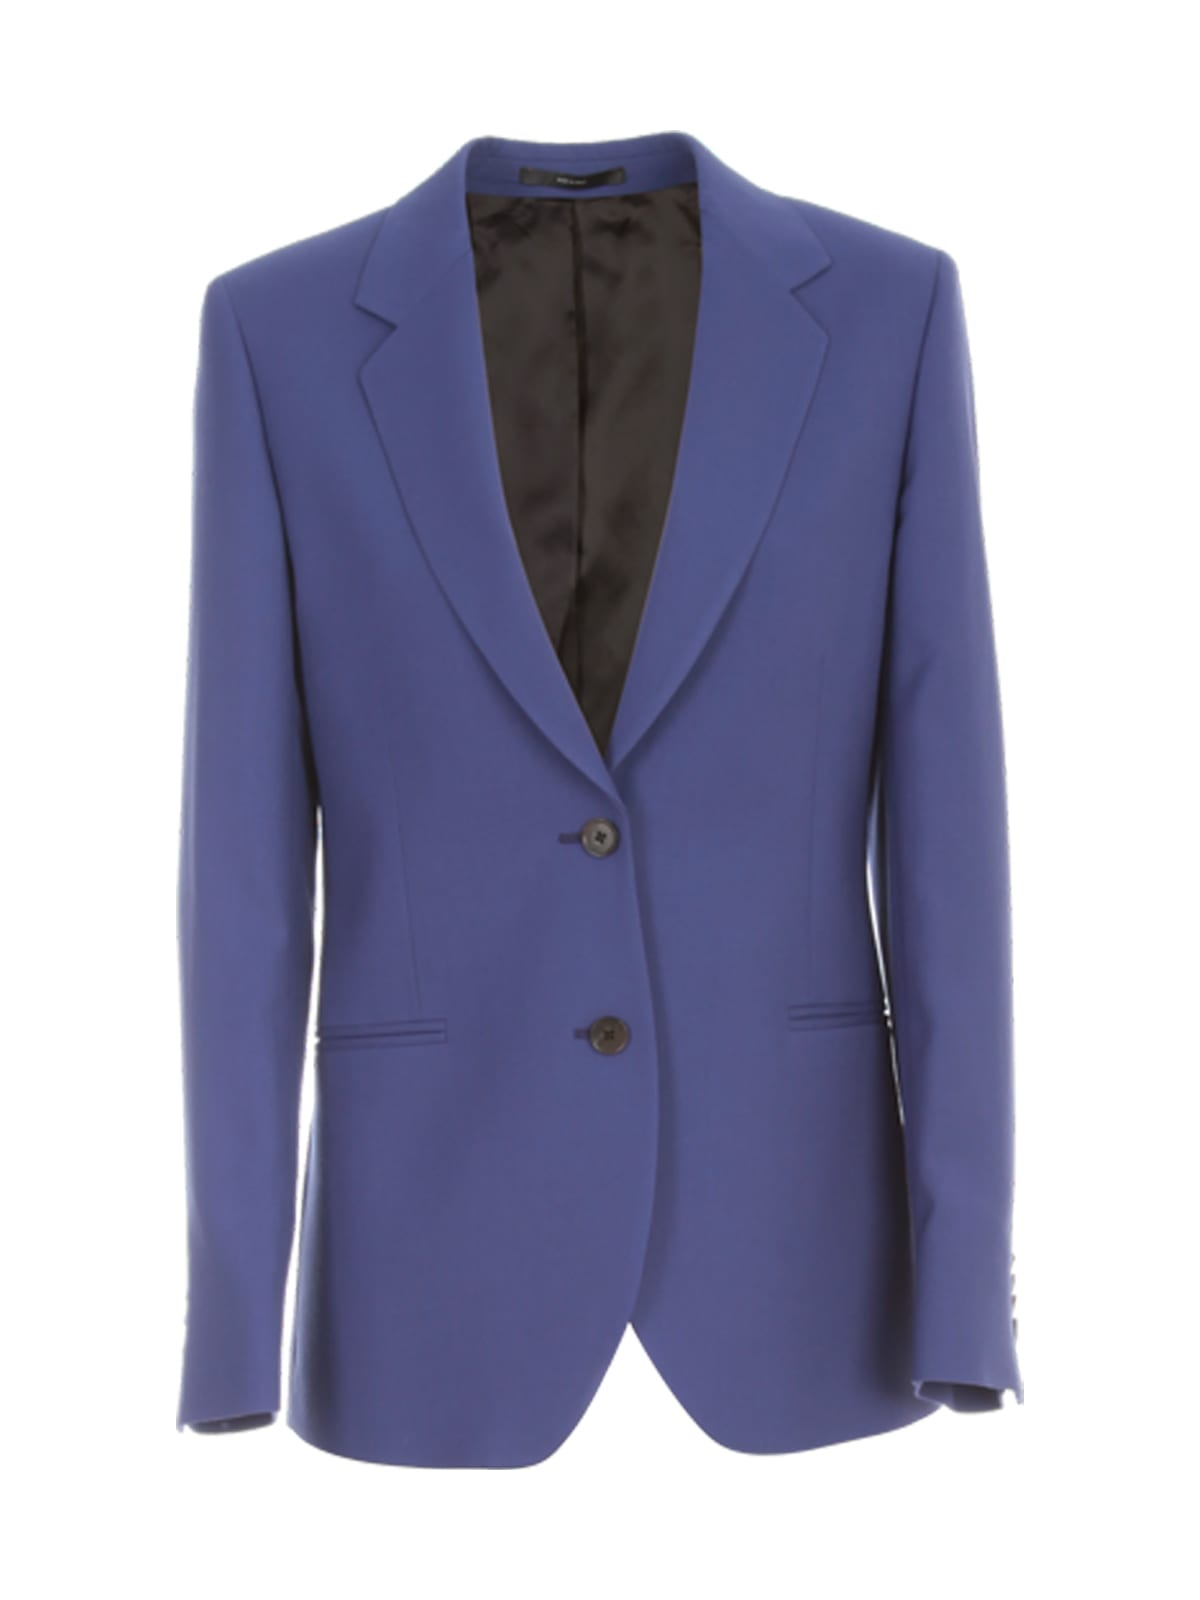 Paul Smith SINGLE BREASTED JACKET